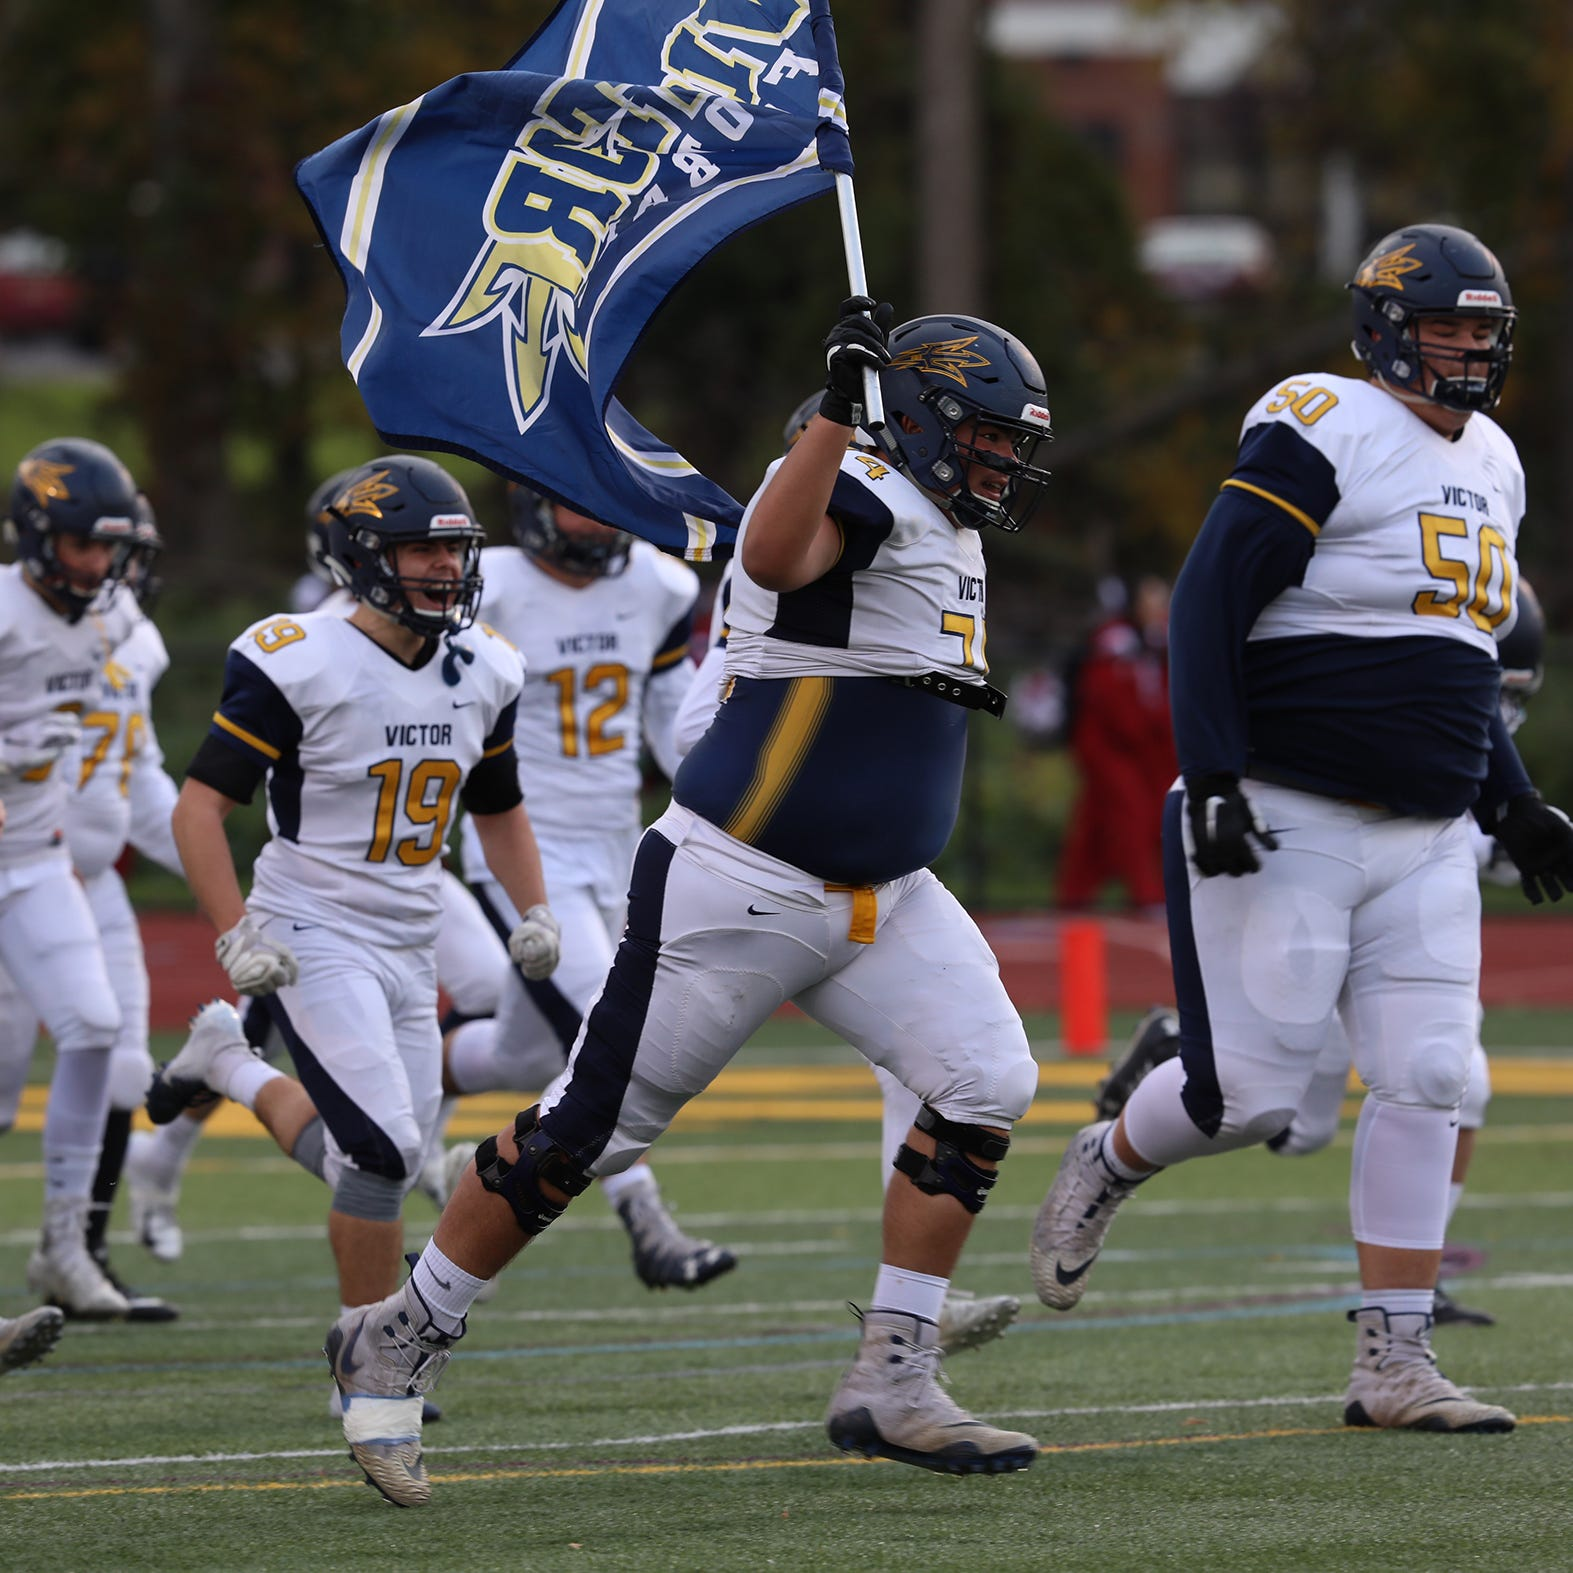 Which school has the best sports program in Section V? According to one report, Victor